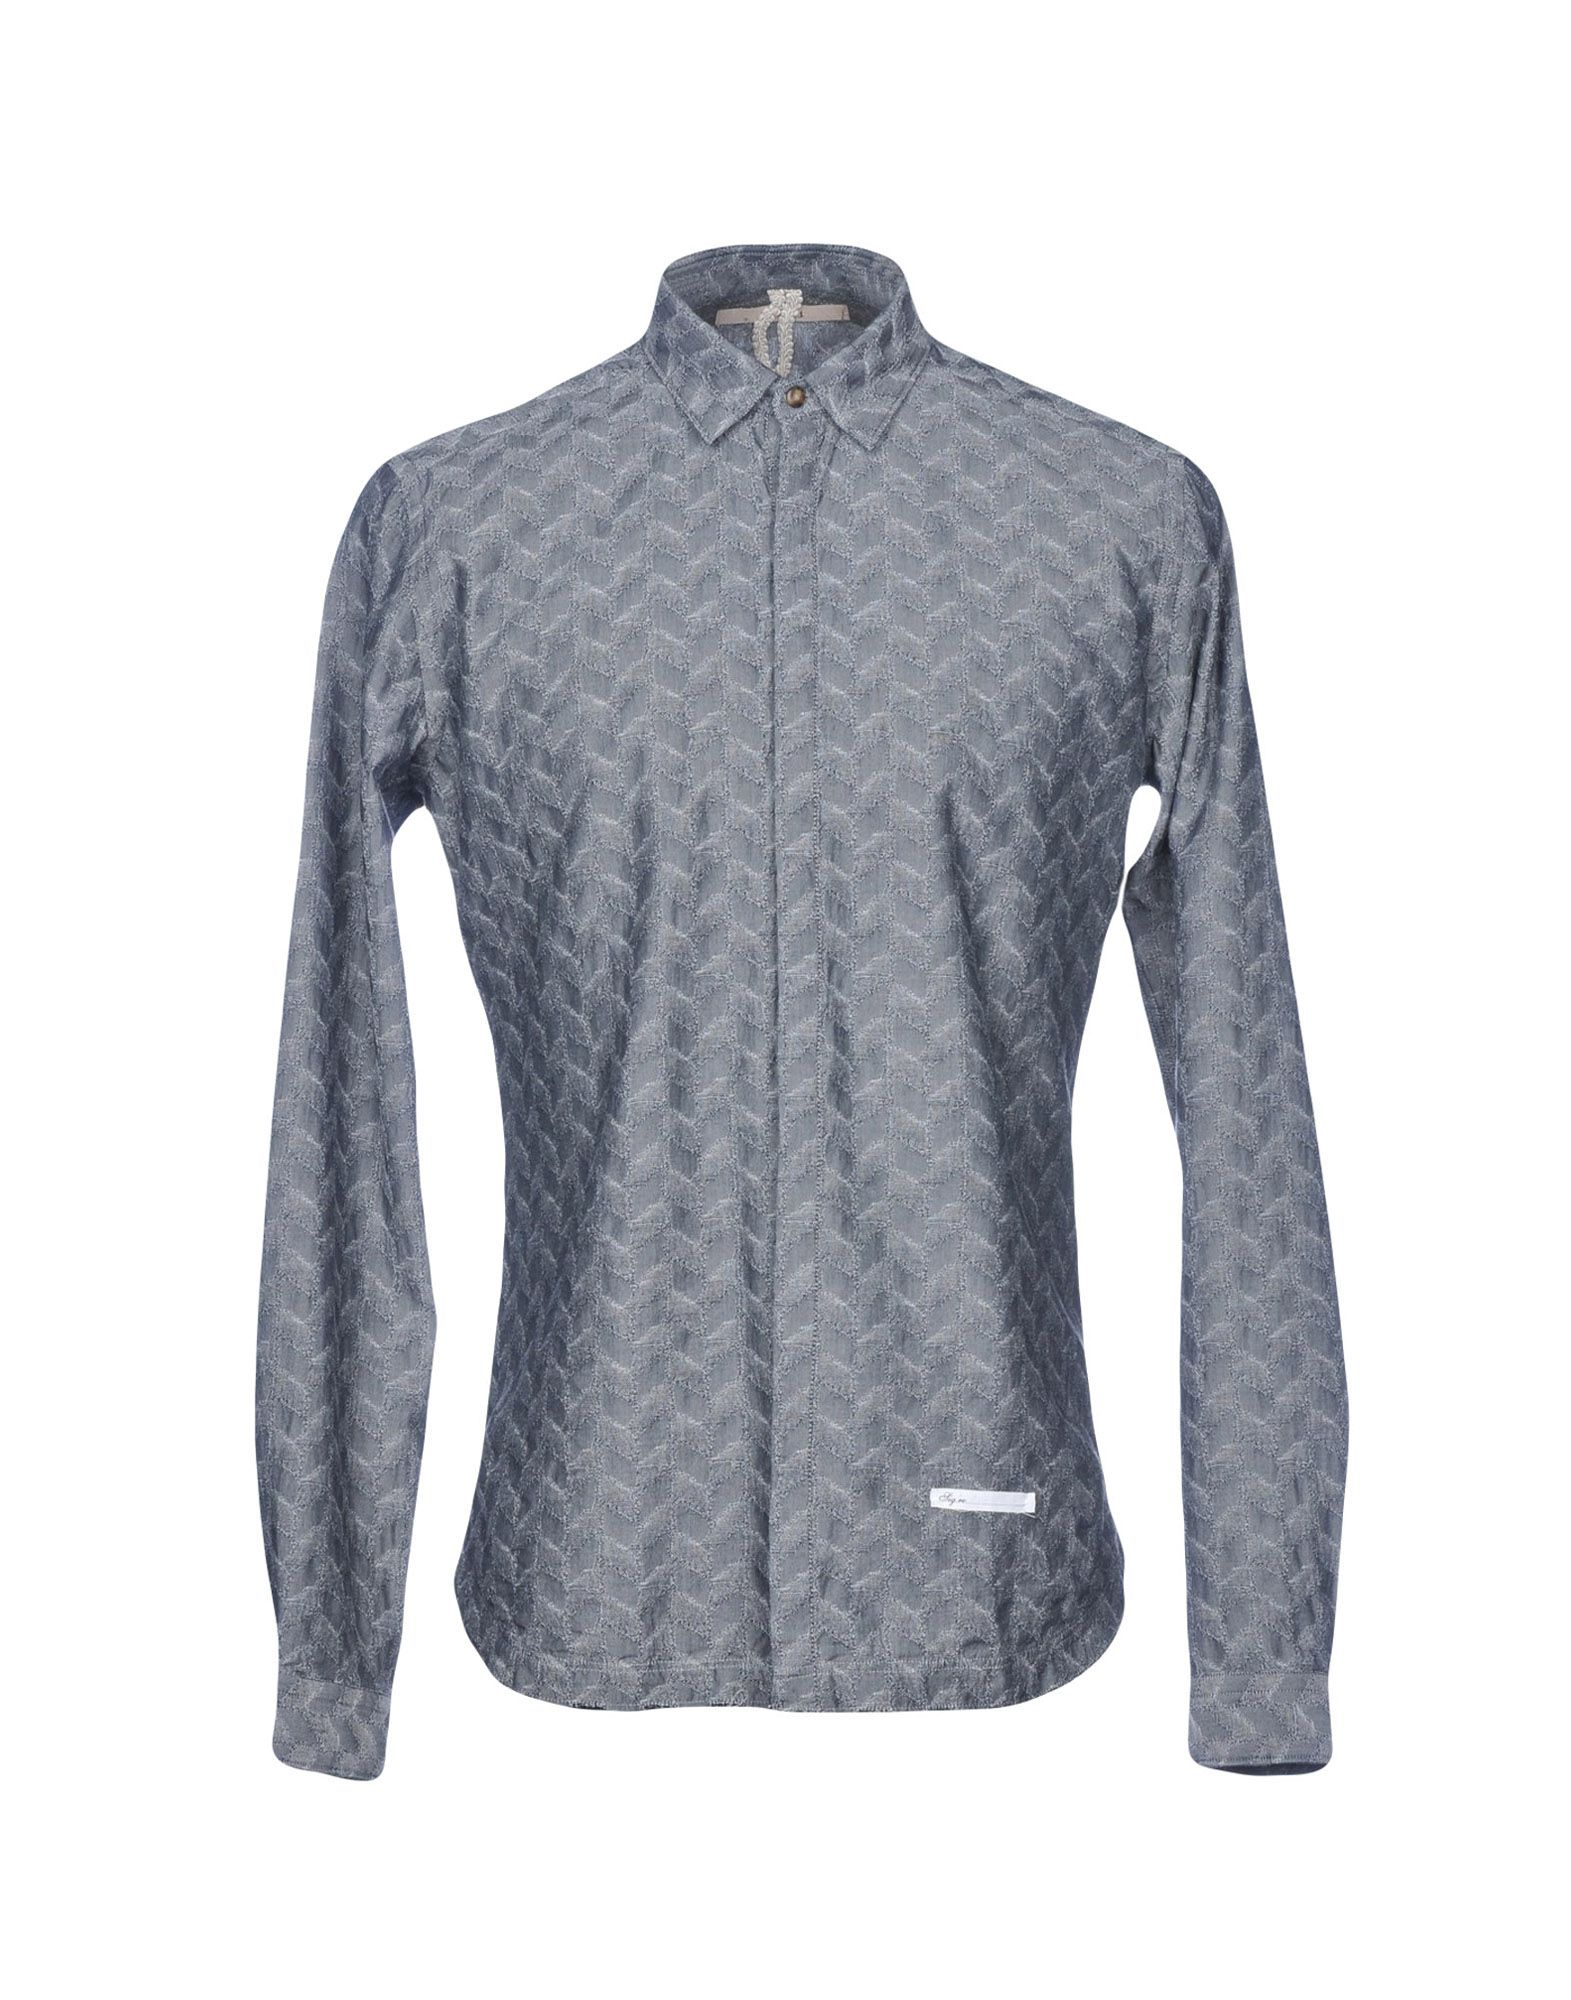 DNL Patterned Shirt in Grey